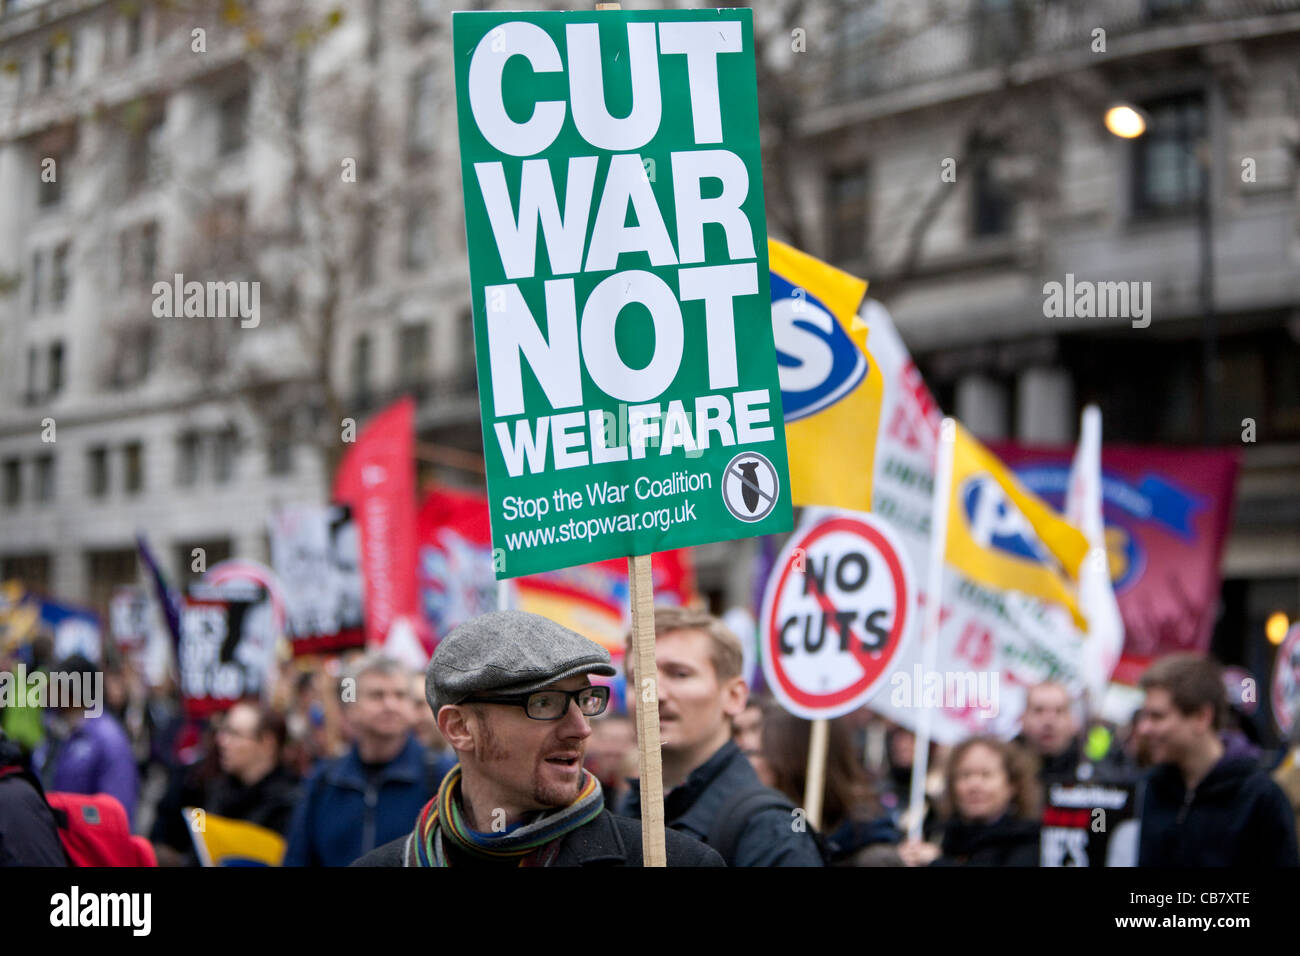 Public sector strike (the unions) London, England, 2011 - Stock Image